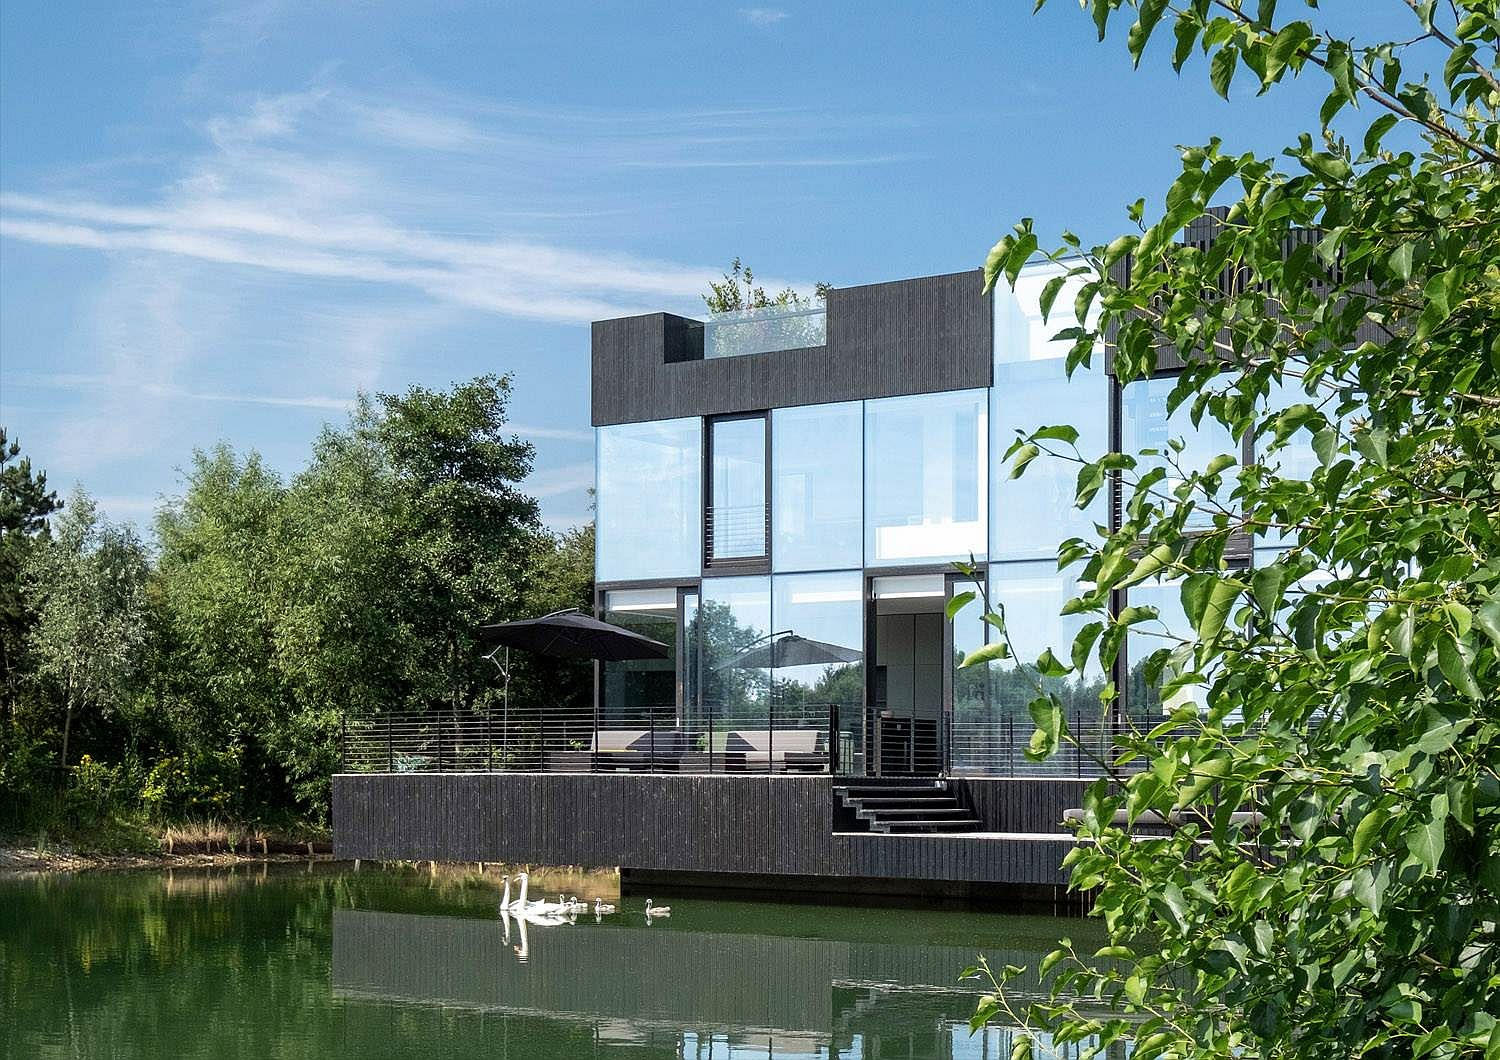 Villa on a Lake clad in glass